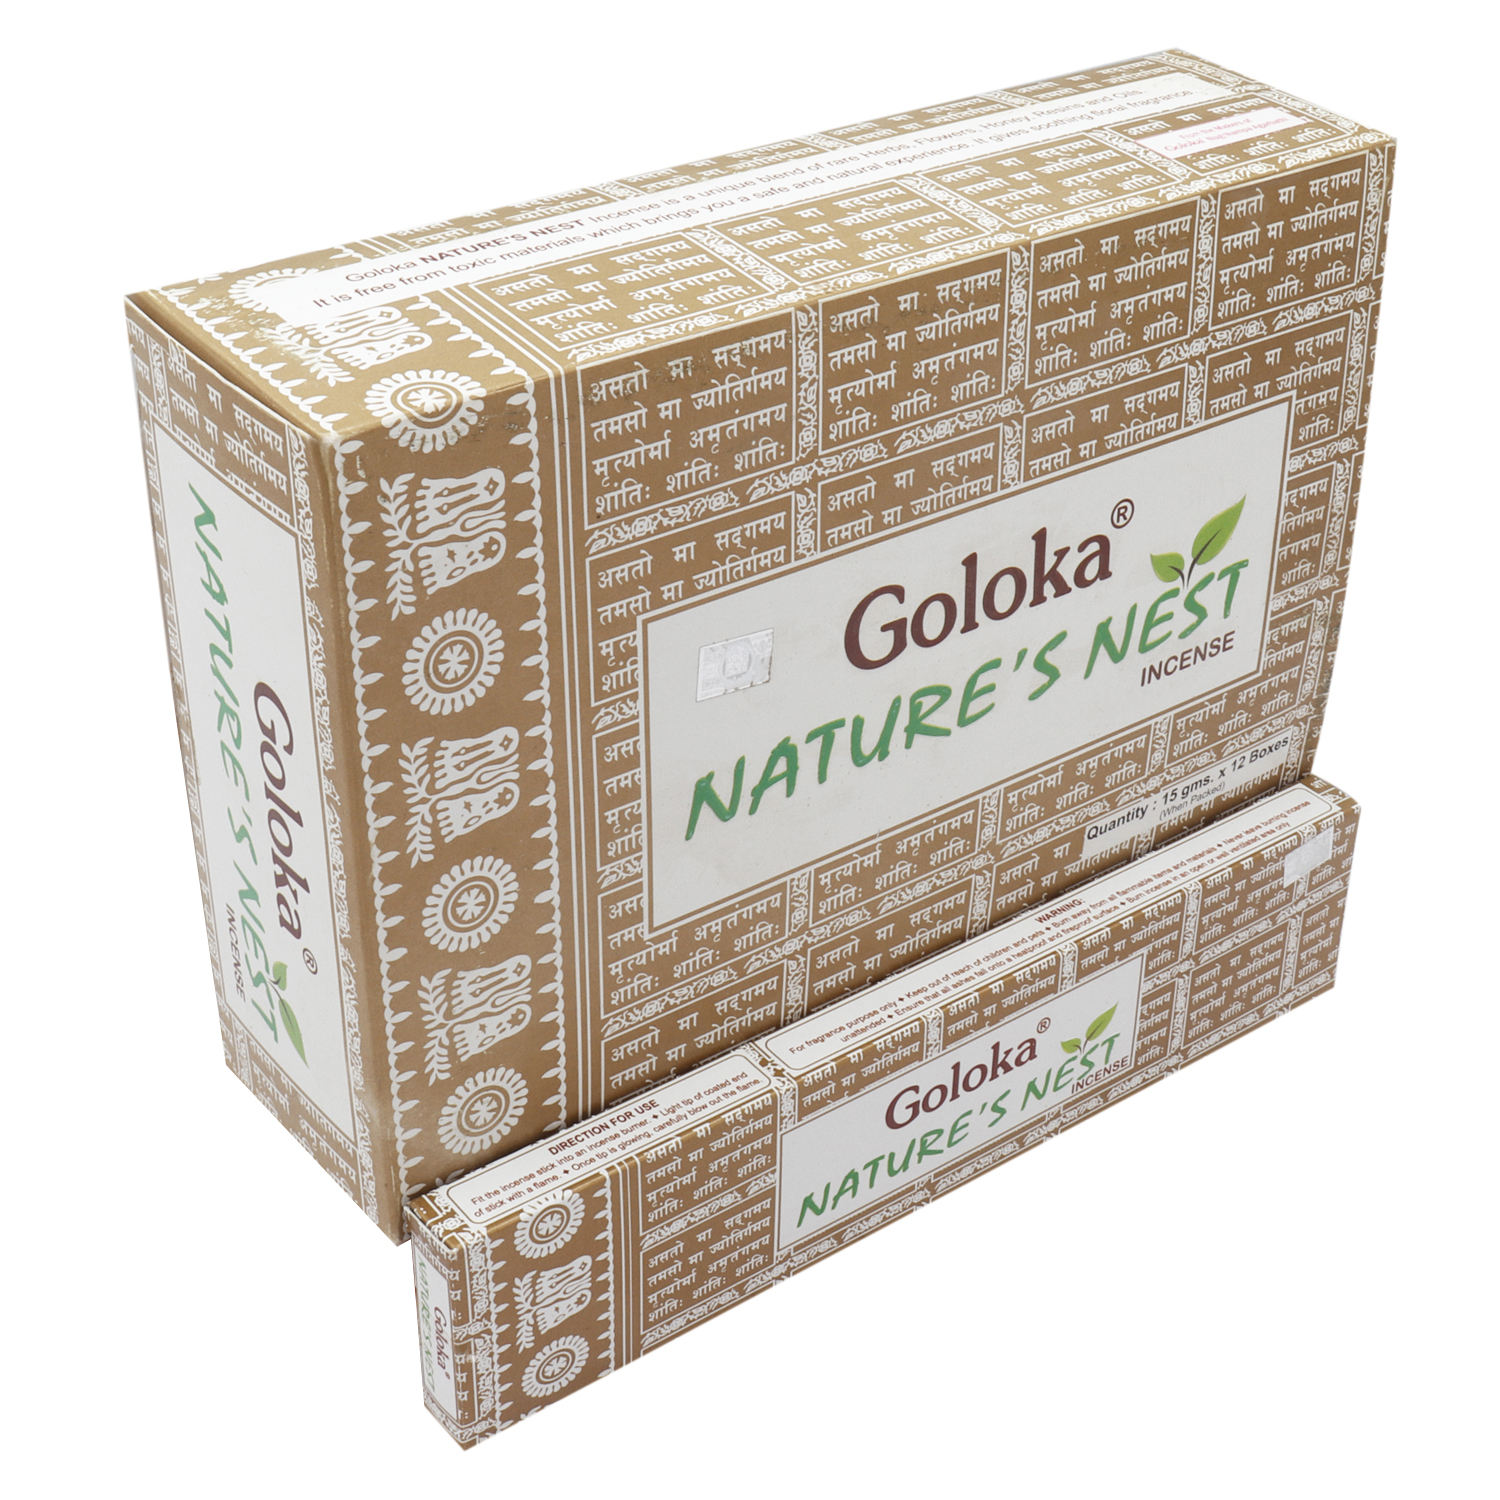 GOLOKA NATURE NEST 15 GM